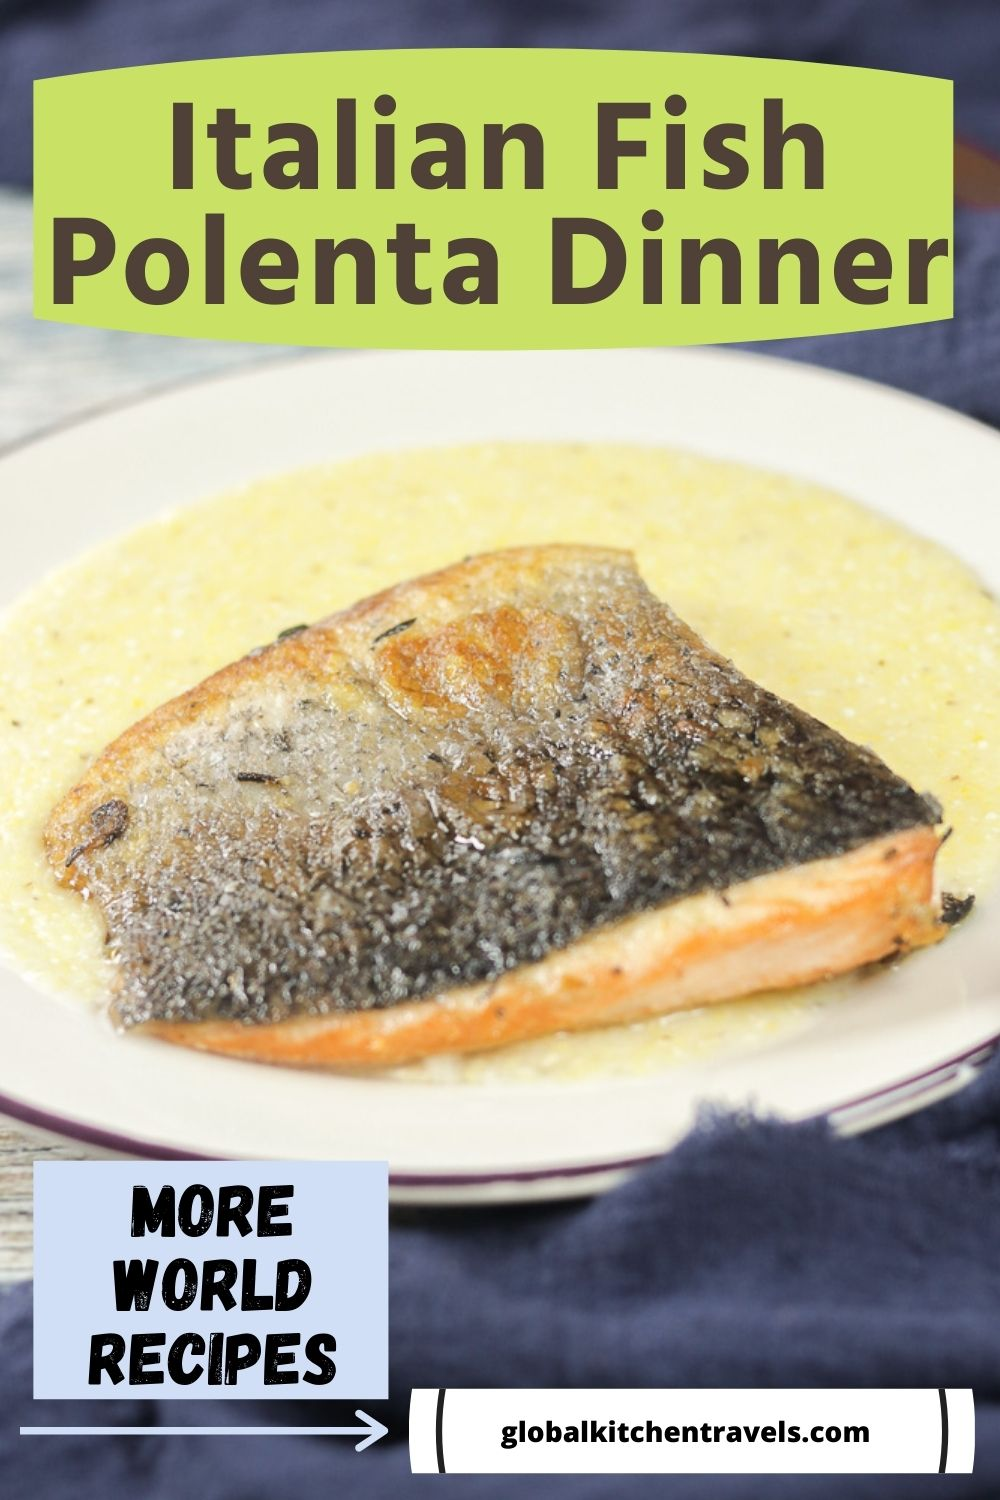 salmon and polenta with text